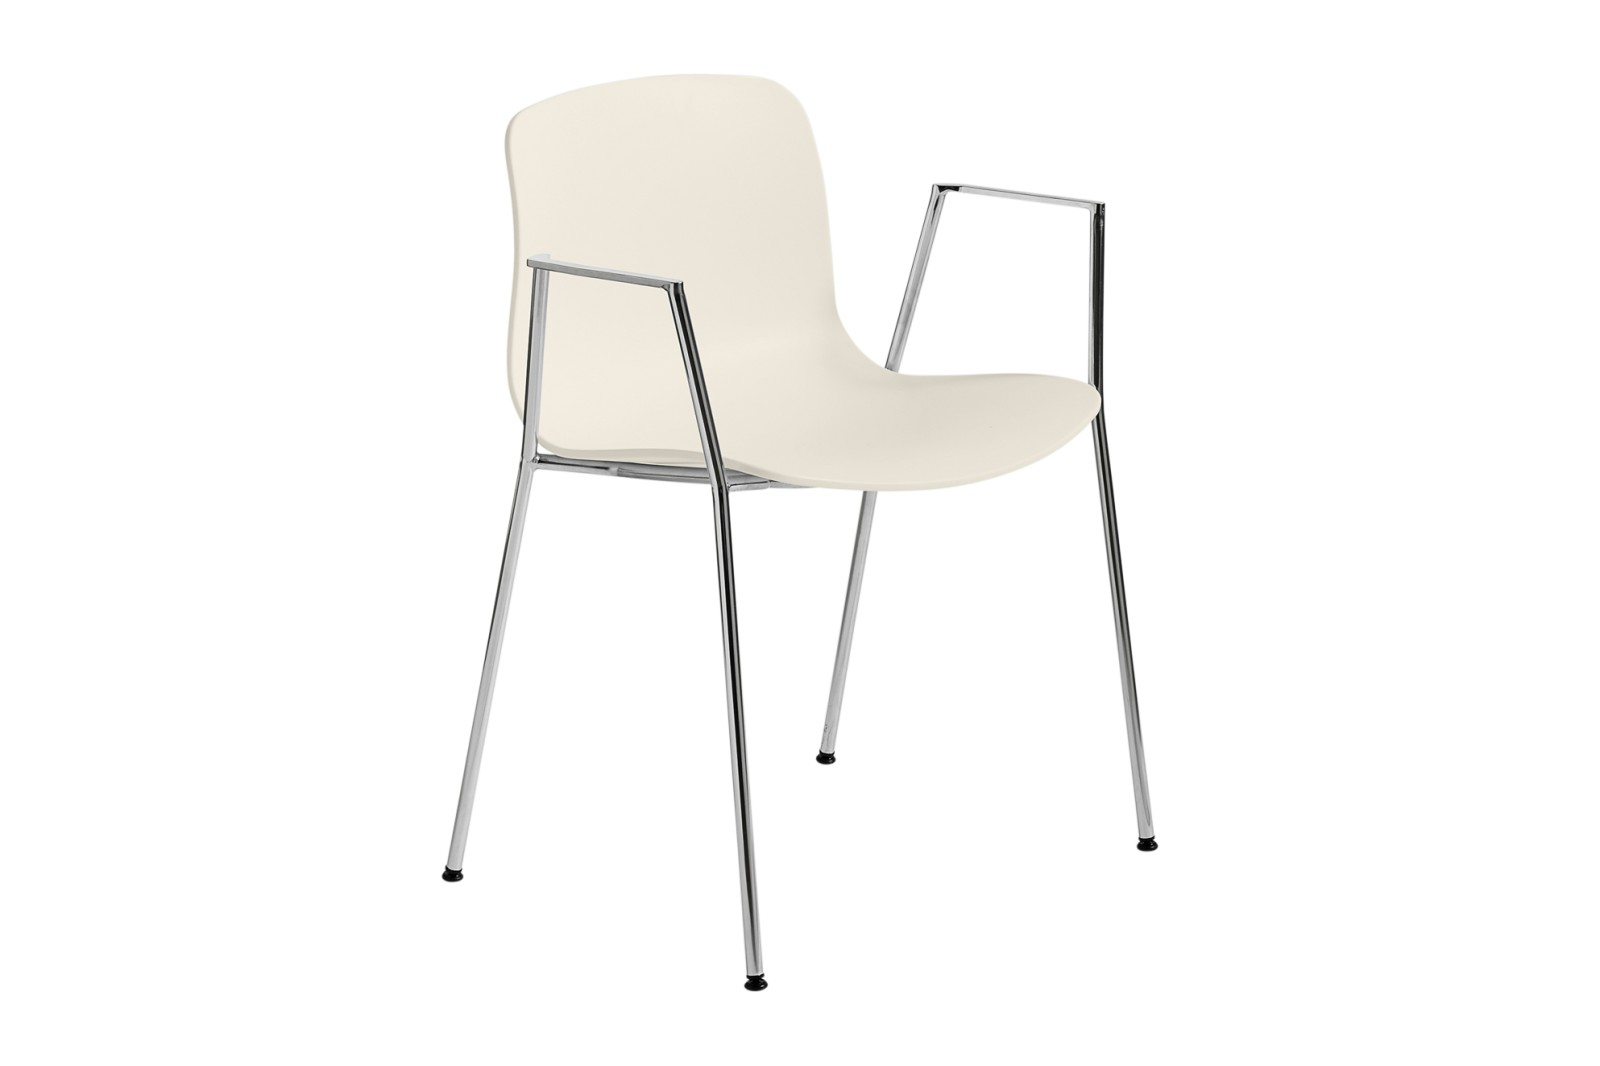 About A Chair AAC18 Cream white, Chromed Steel